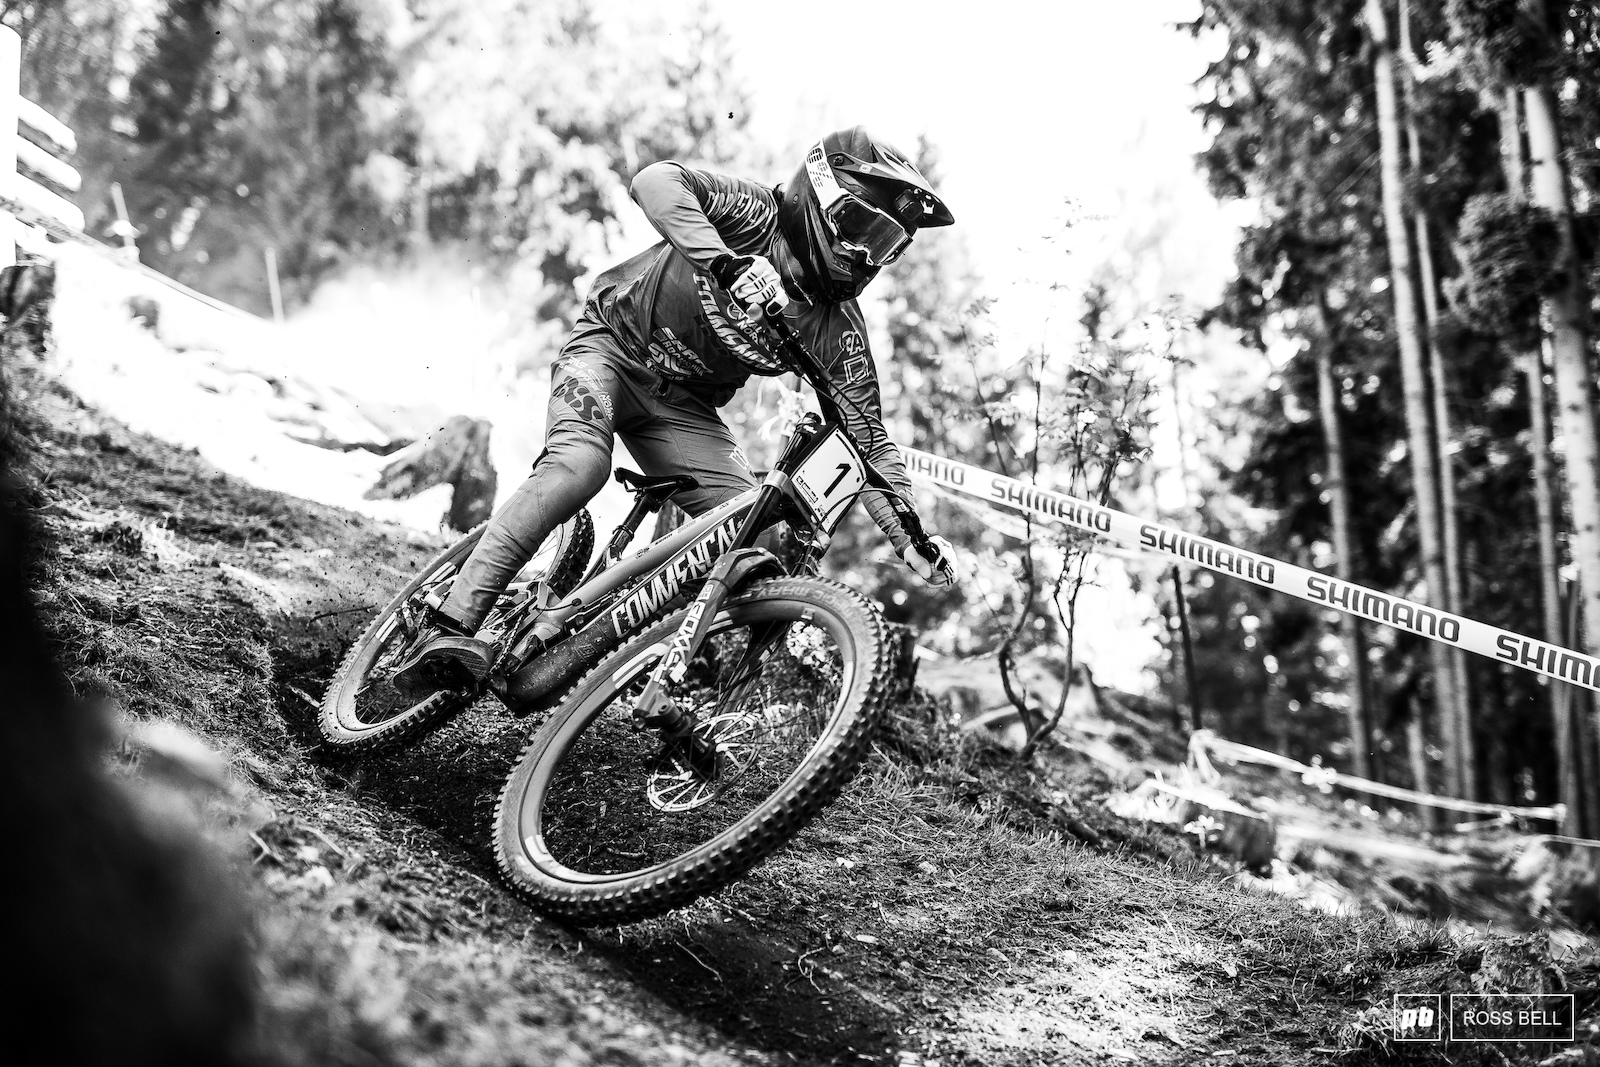 It s 2 out of 2 so far for Thibaut Daprela in 2019. He s out to make it 3 here in Leogang.